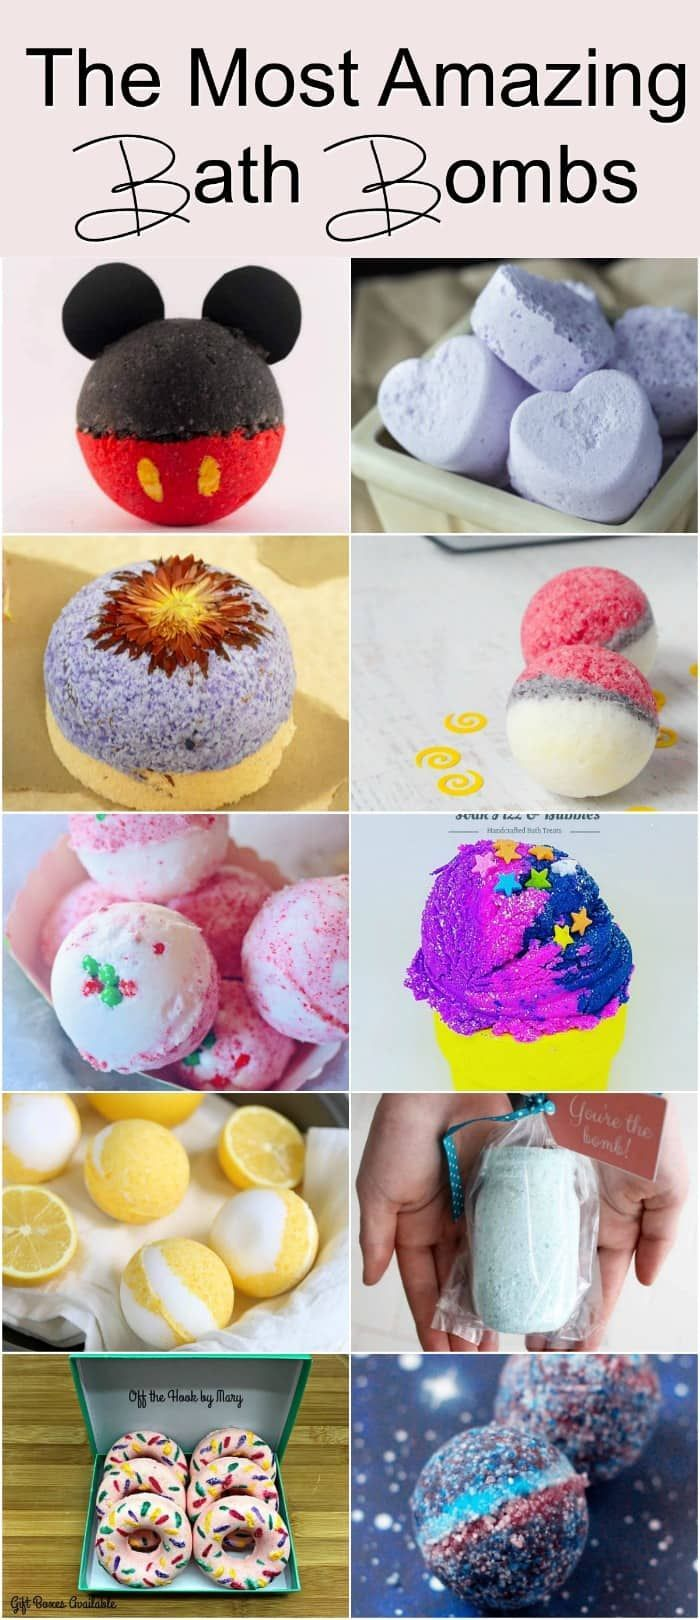 The Most Amazing Bath Bombs - these DIY bath bomb recipes make amazing DIY holiday gifts or teacher appreciation gifts or anytime DIY gifts!